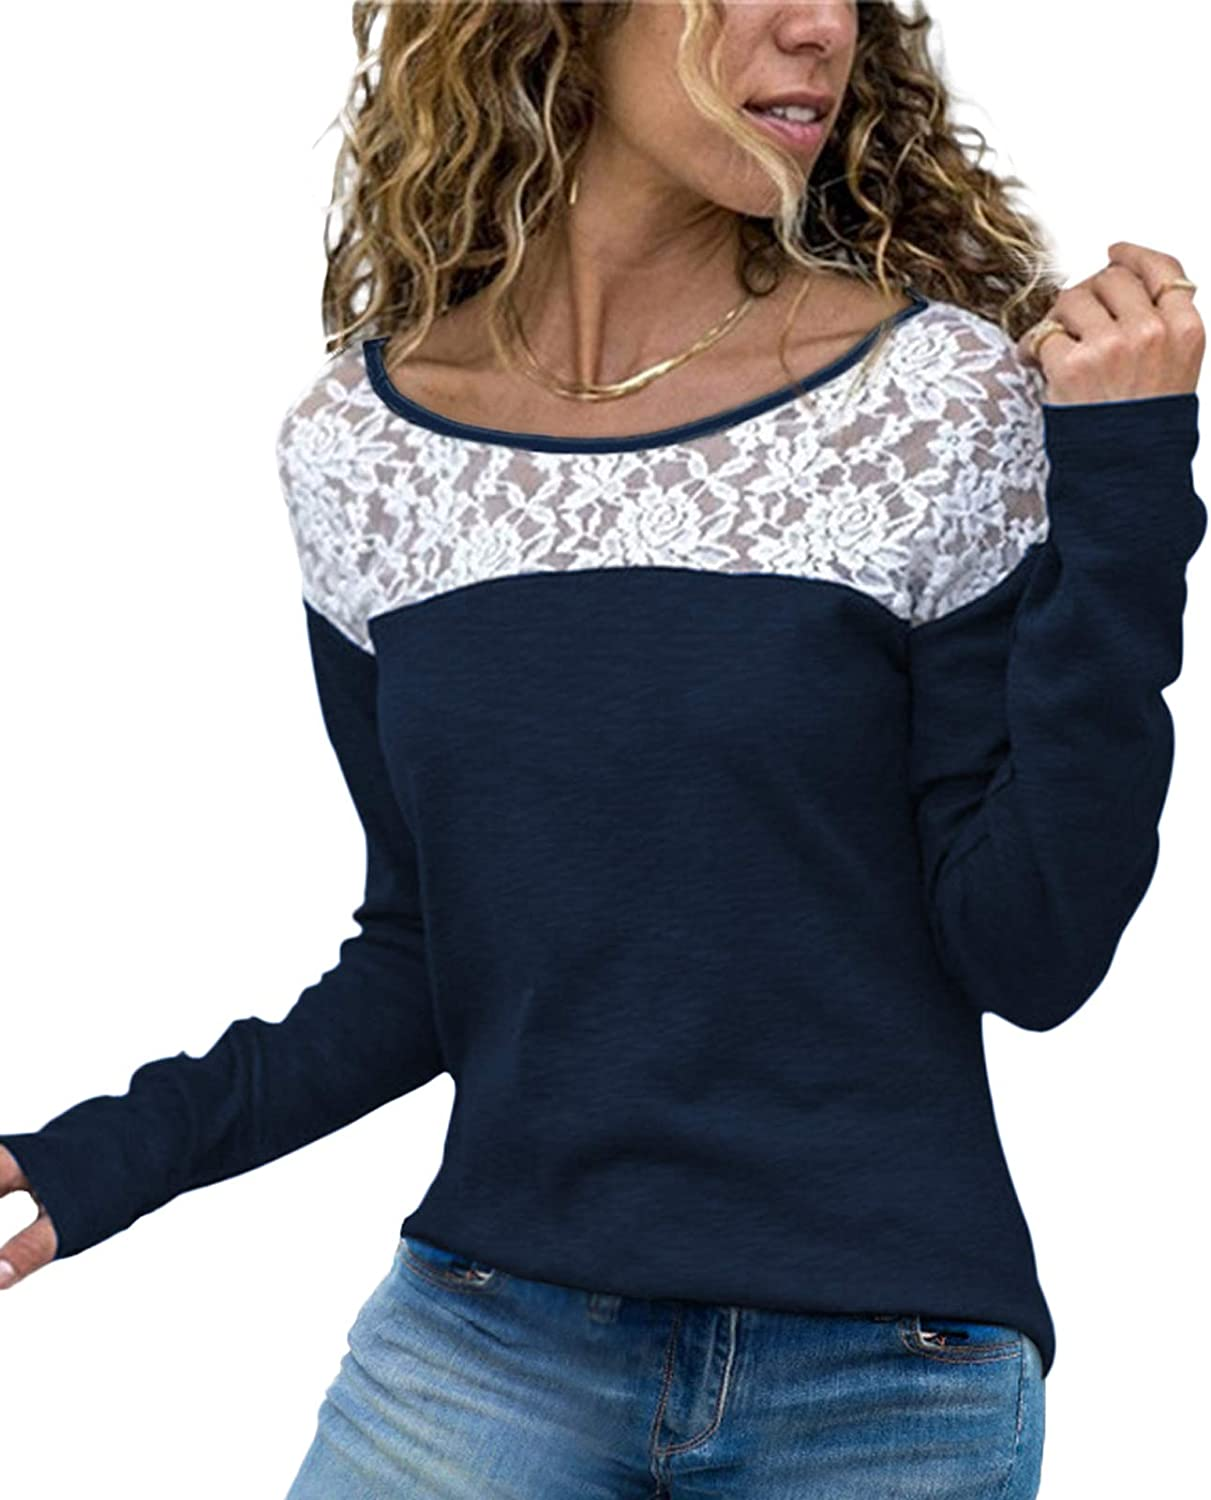 W/ LiCoT Women Cute Lace Top Long Sleeve T Shirt Crew Neck Casual Shirt Blouse